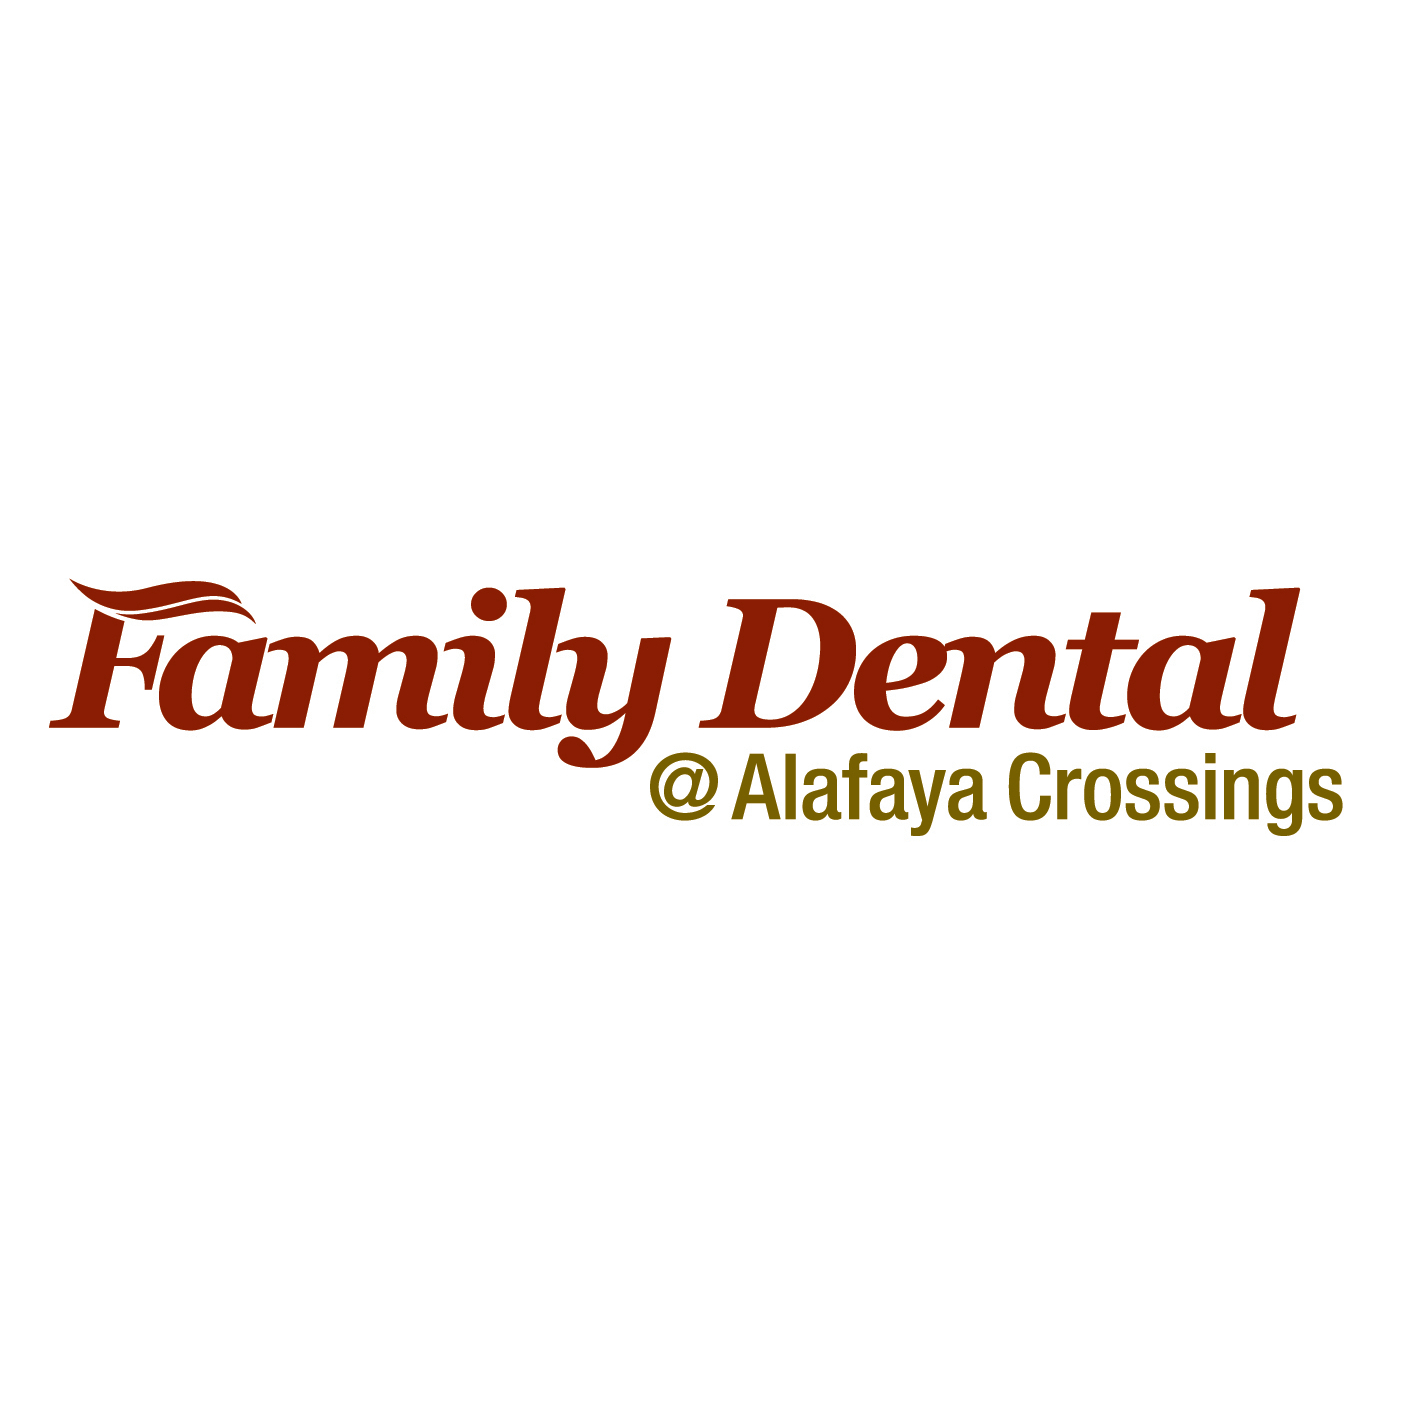 Family Dental at Alafaya Crossings